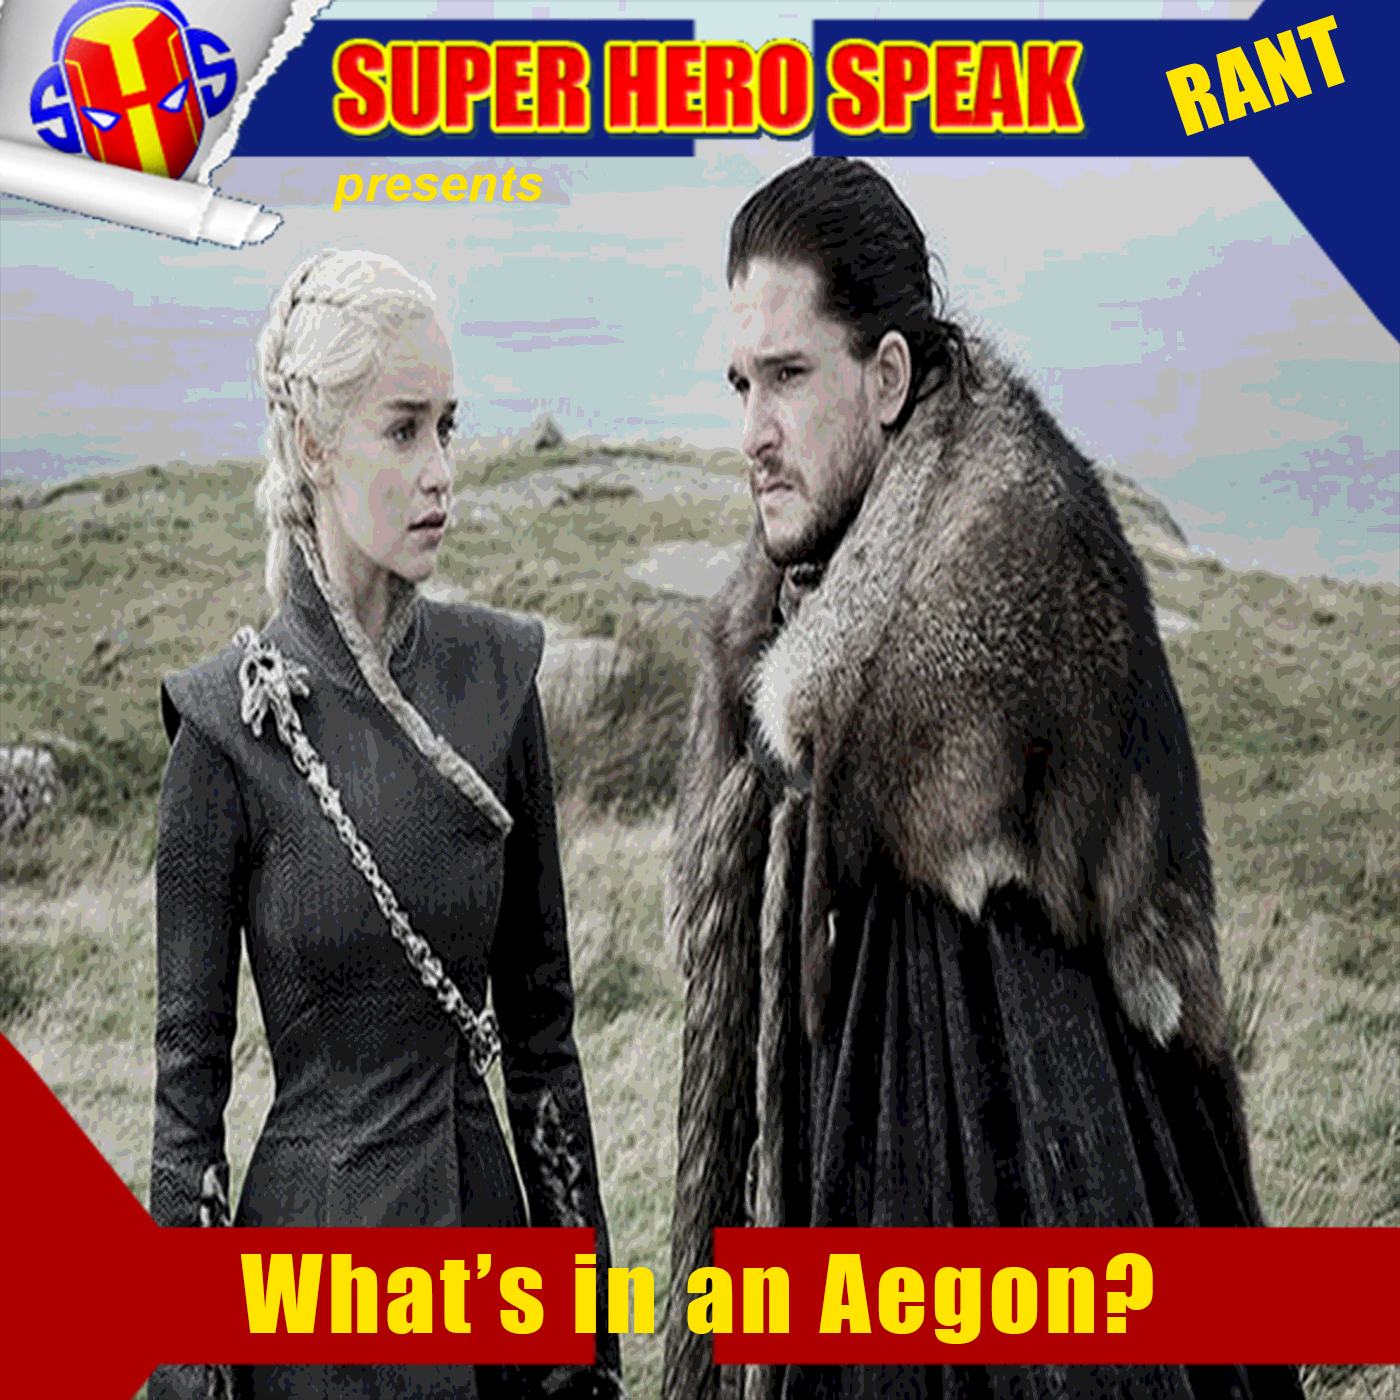 Rant: What's in an Aegon?